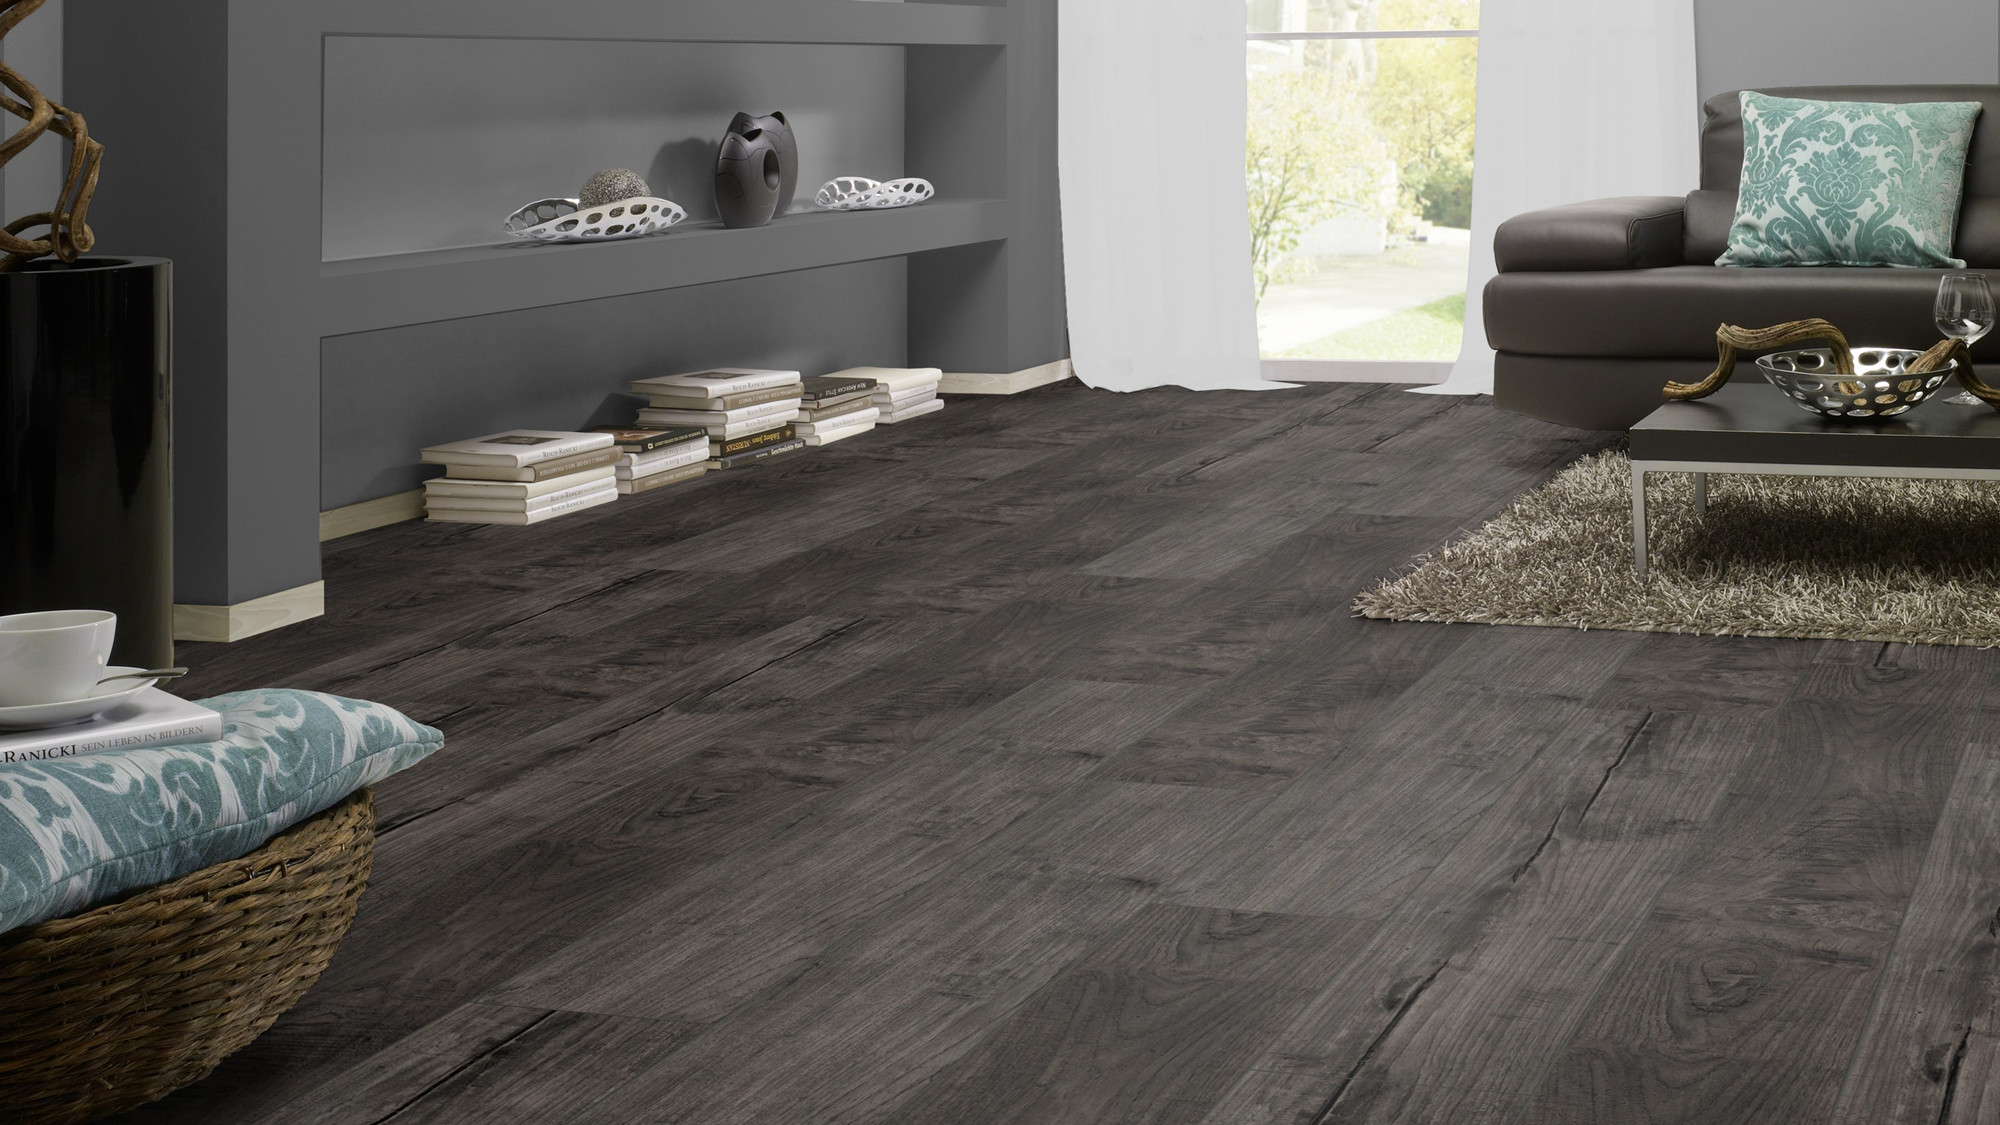 villeroy-boch-laminate-flooring-royalteak-8mm